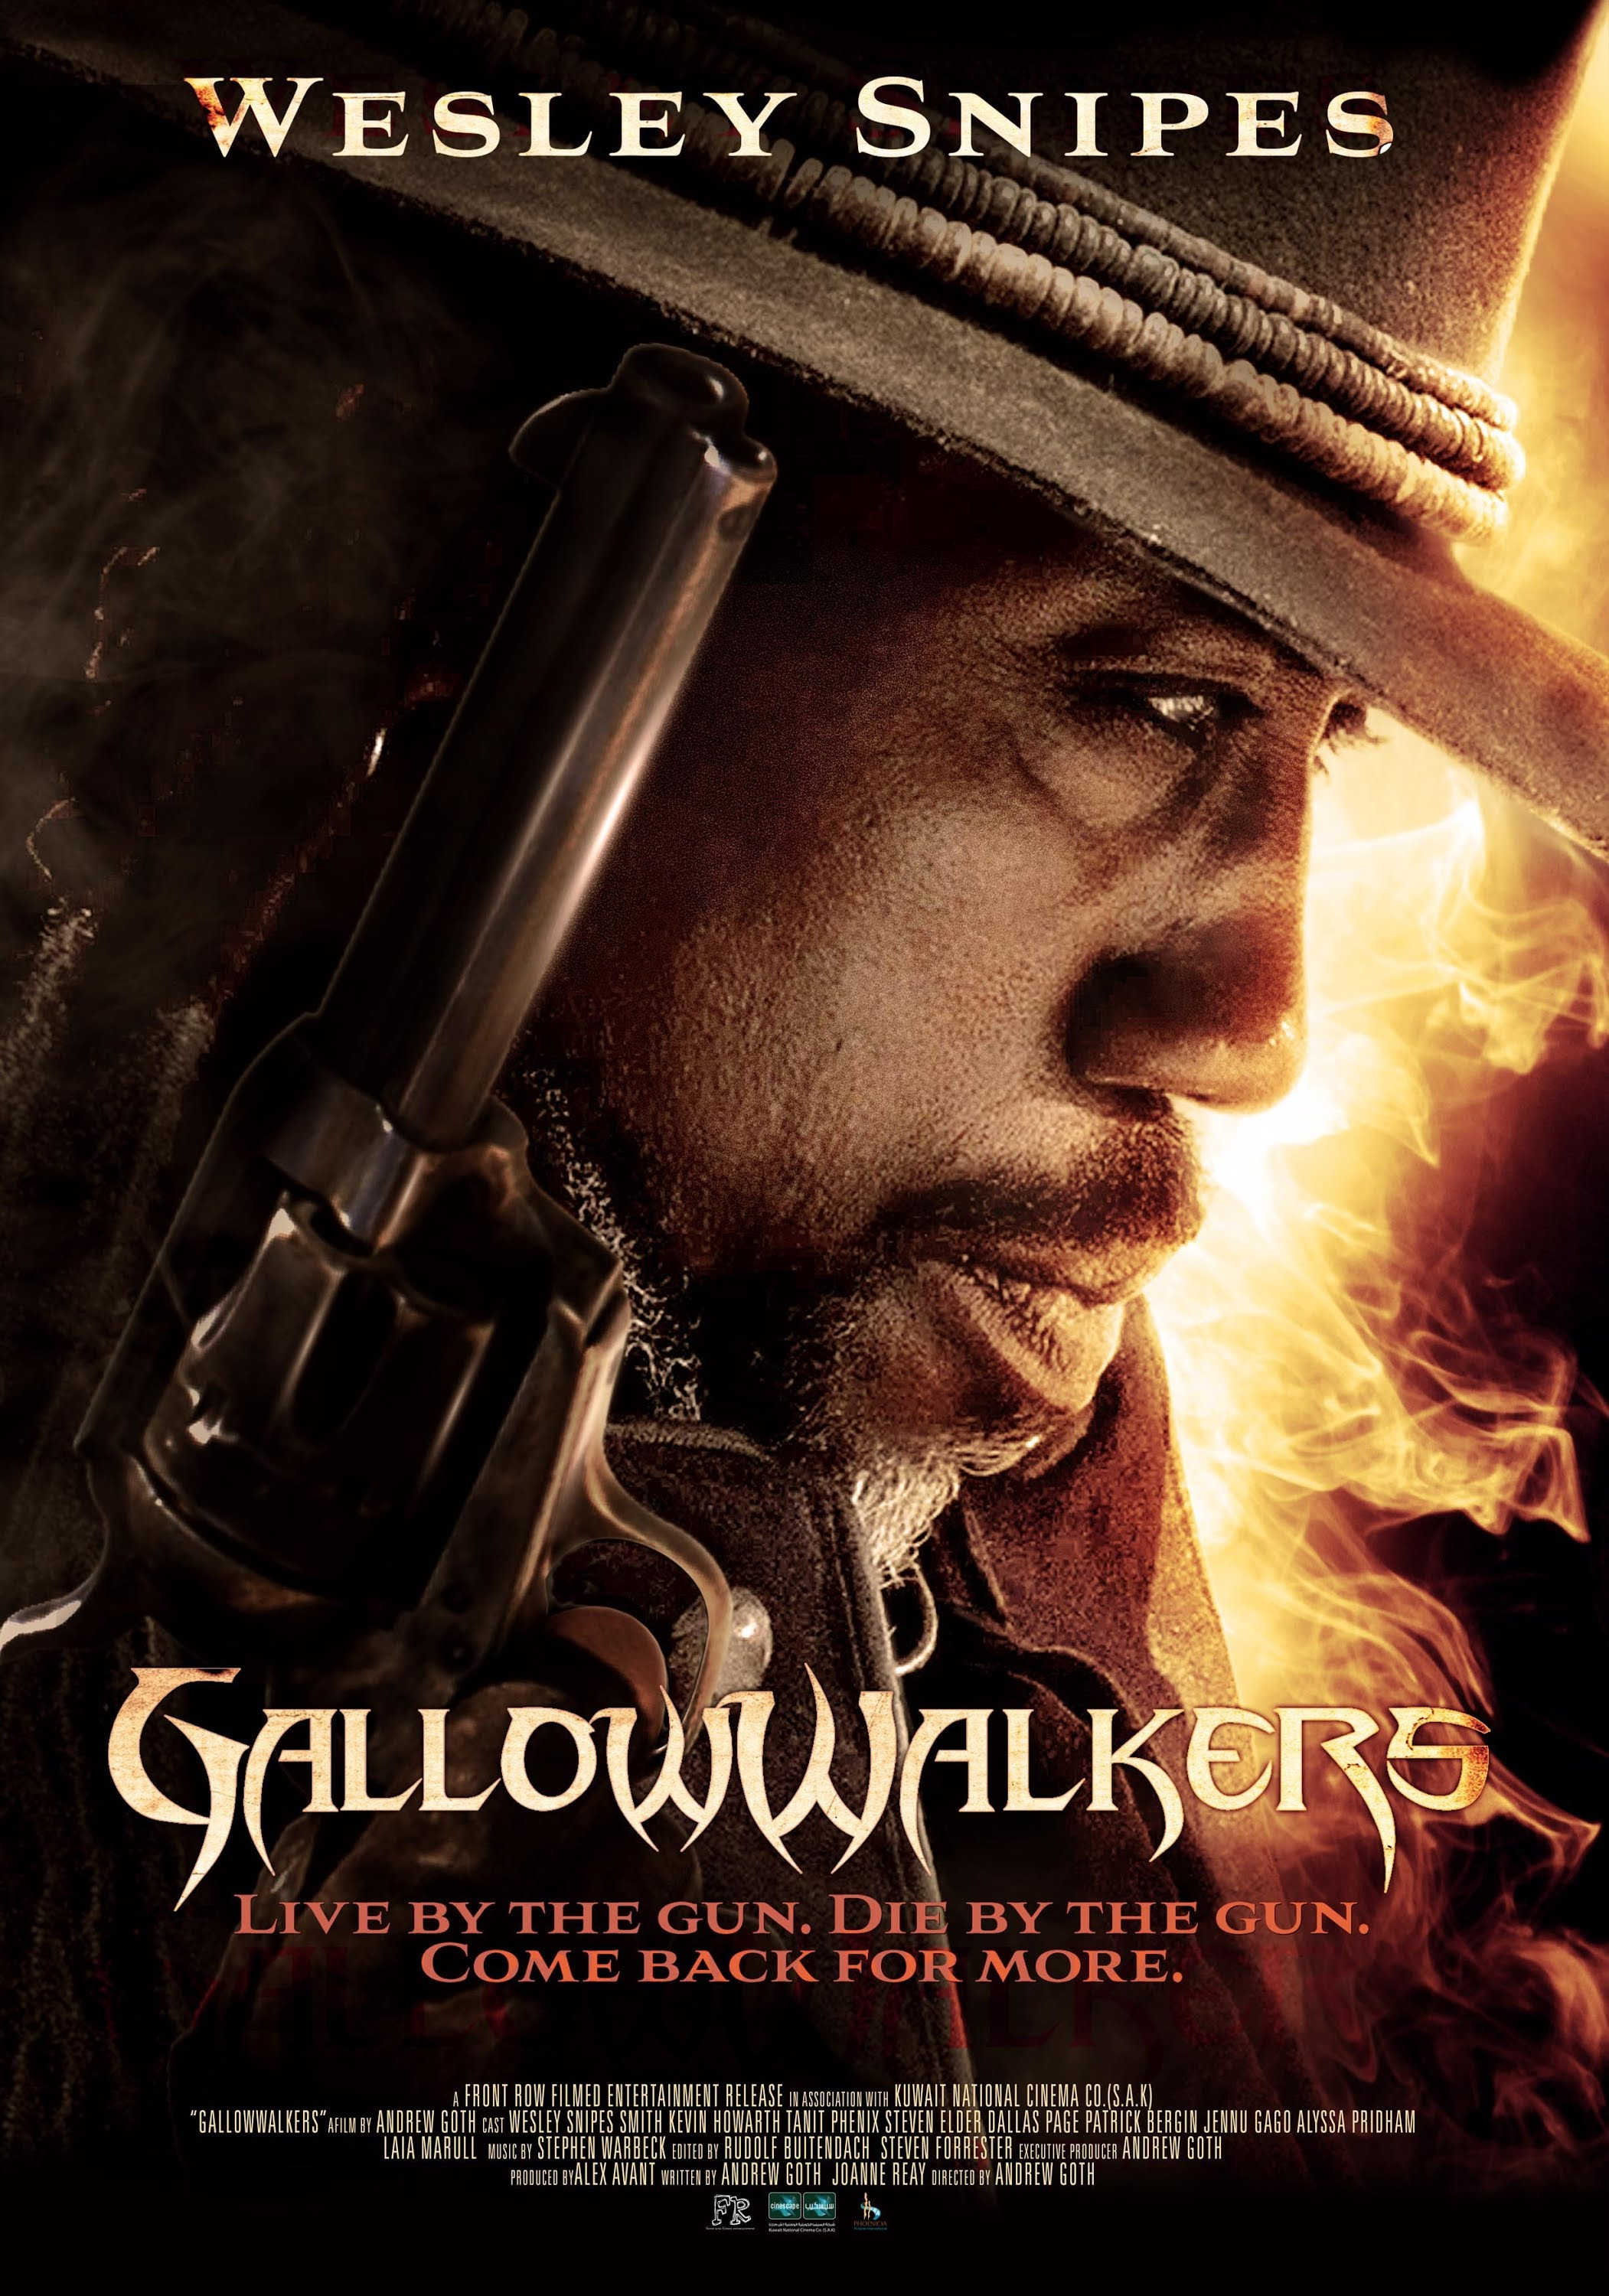 Gallowwalkers Official Trailer (2013) Wesley Snipes Zombie Movie HD